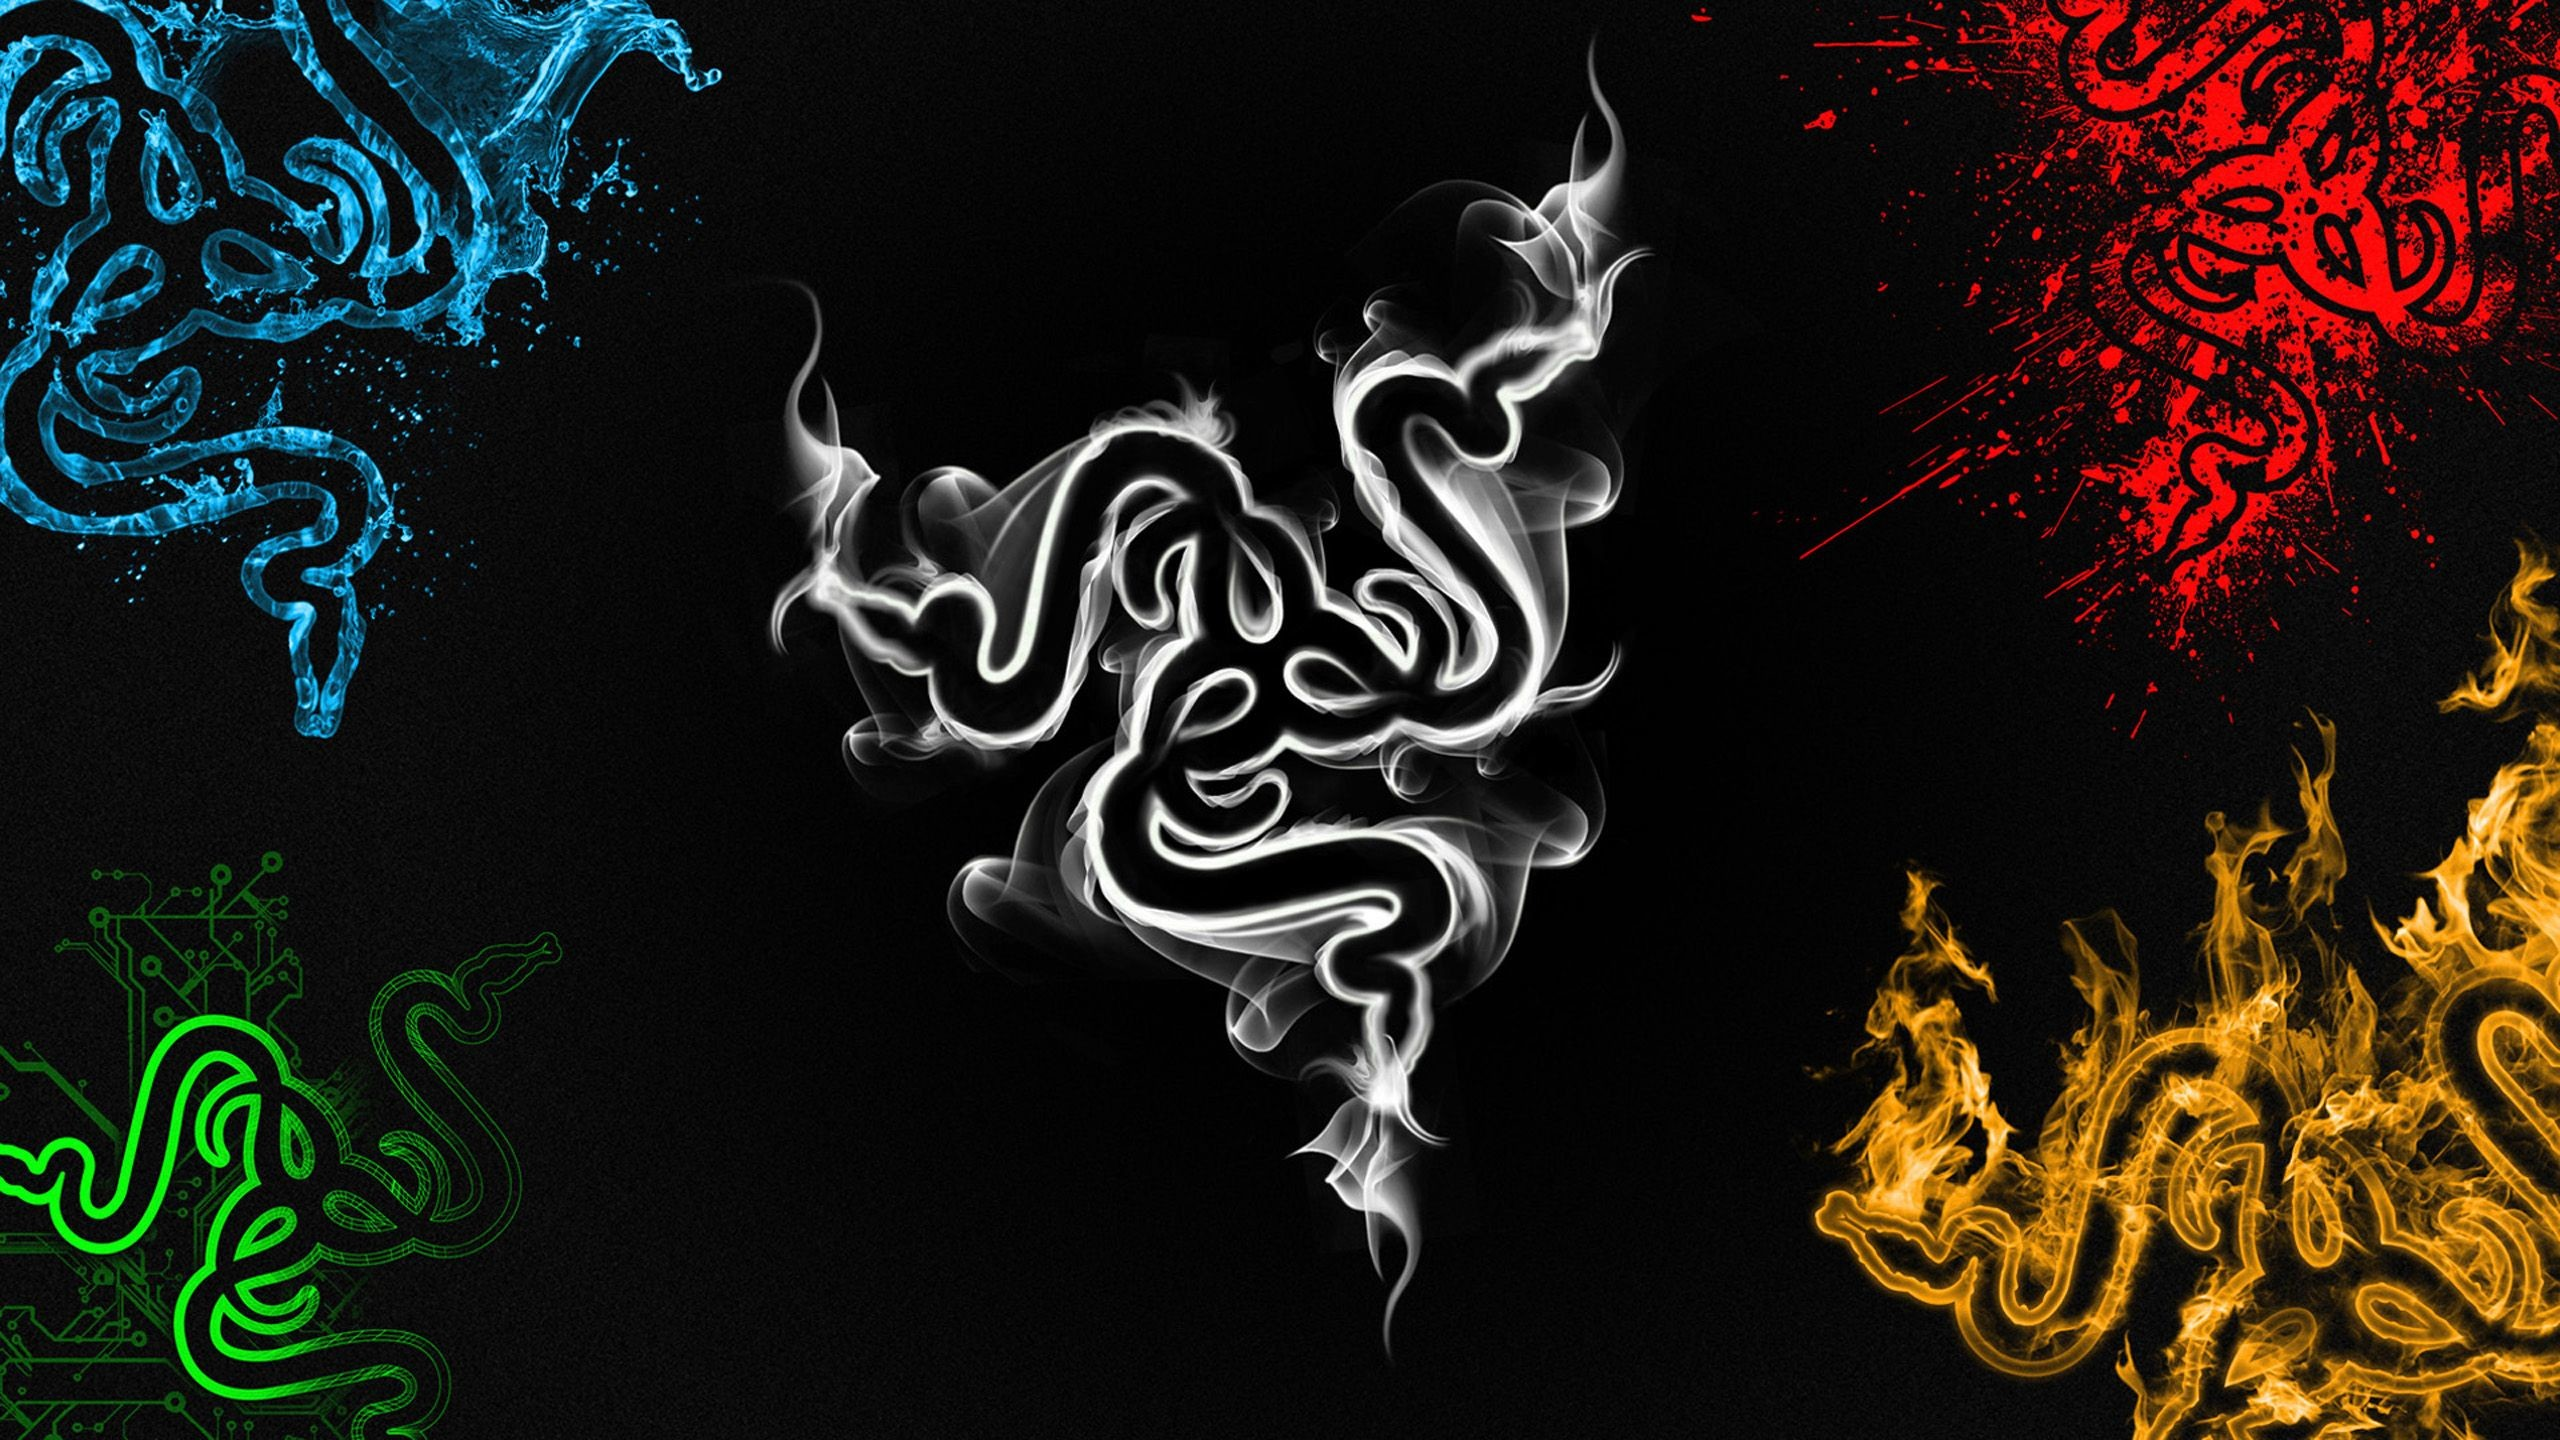 Res: 2560x1440, Games Wallpaper  Find best latest Games Wallpaper  for  your PC desktop background & mobile phones.